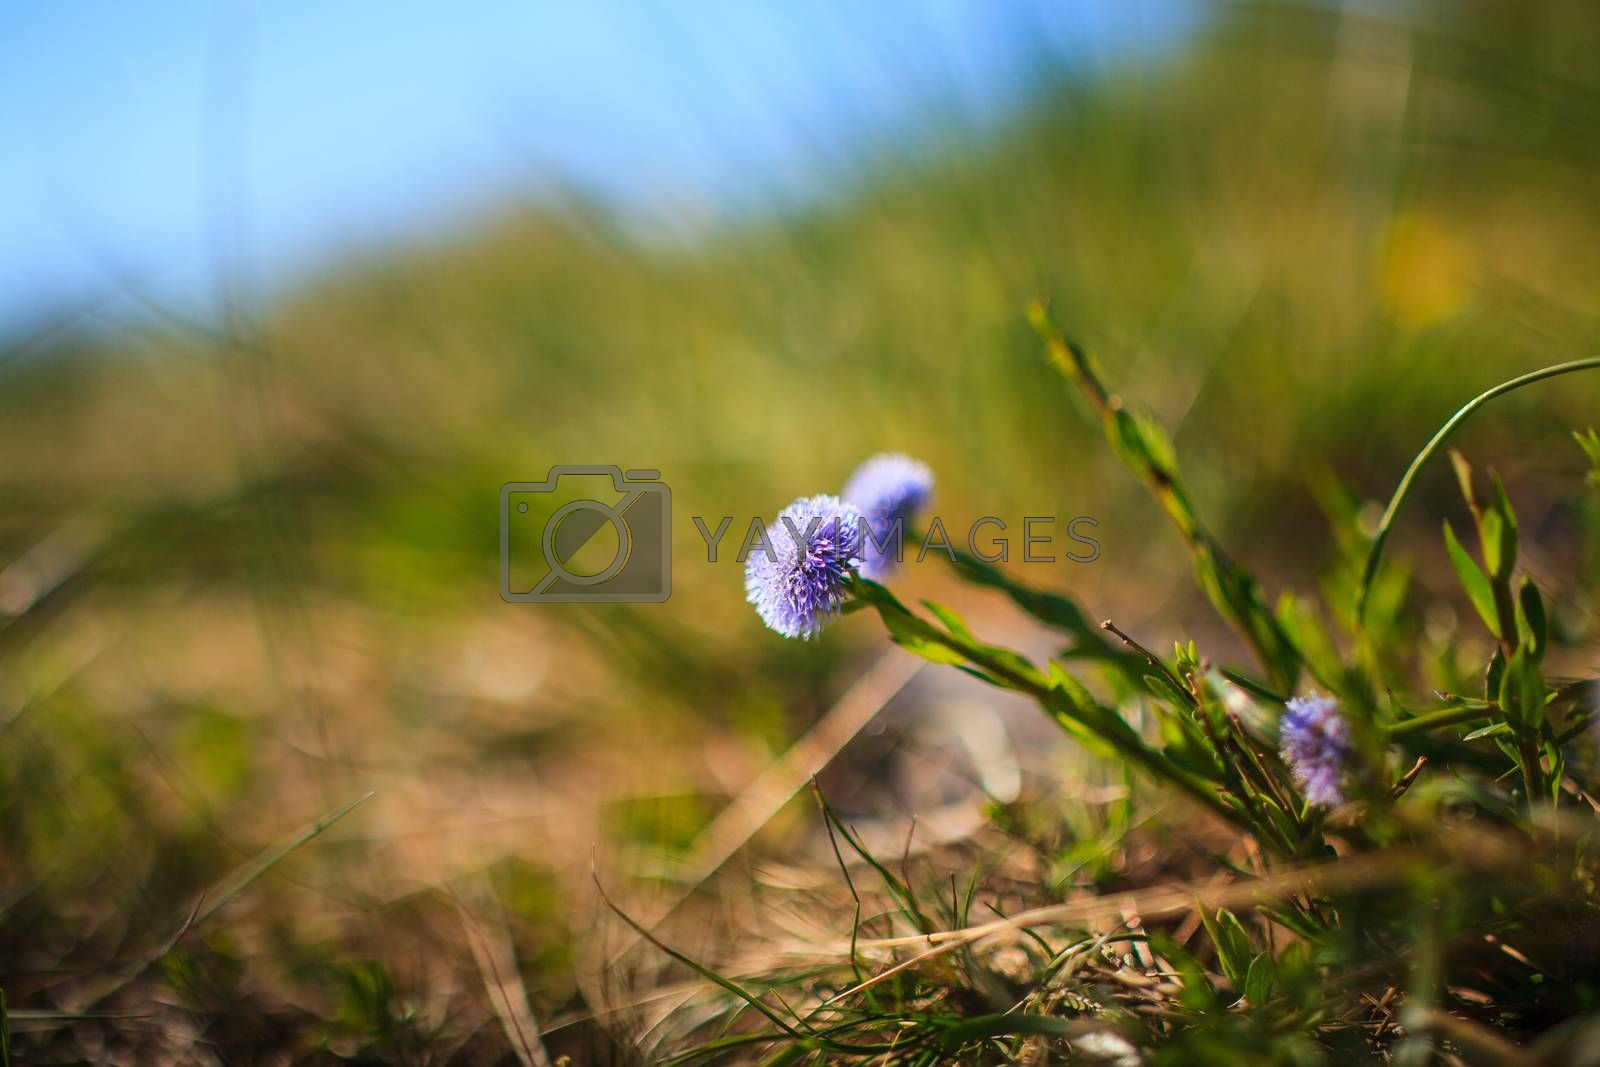 Globularia Cordifolia L. flowers in the countryside